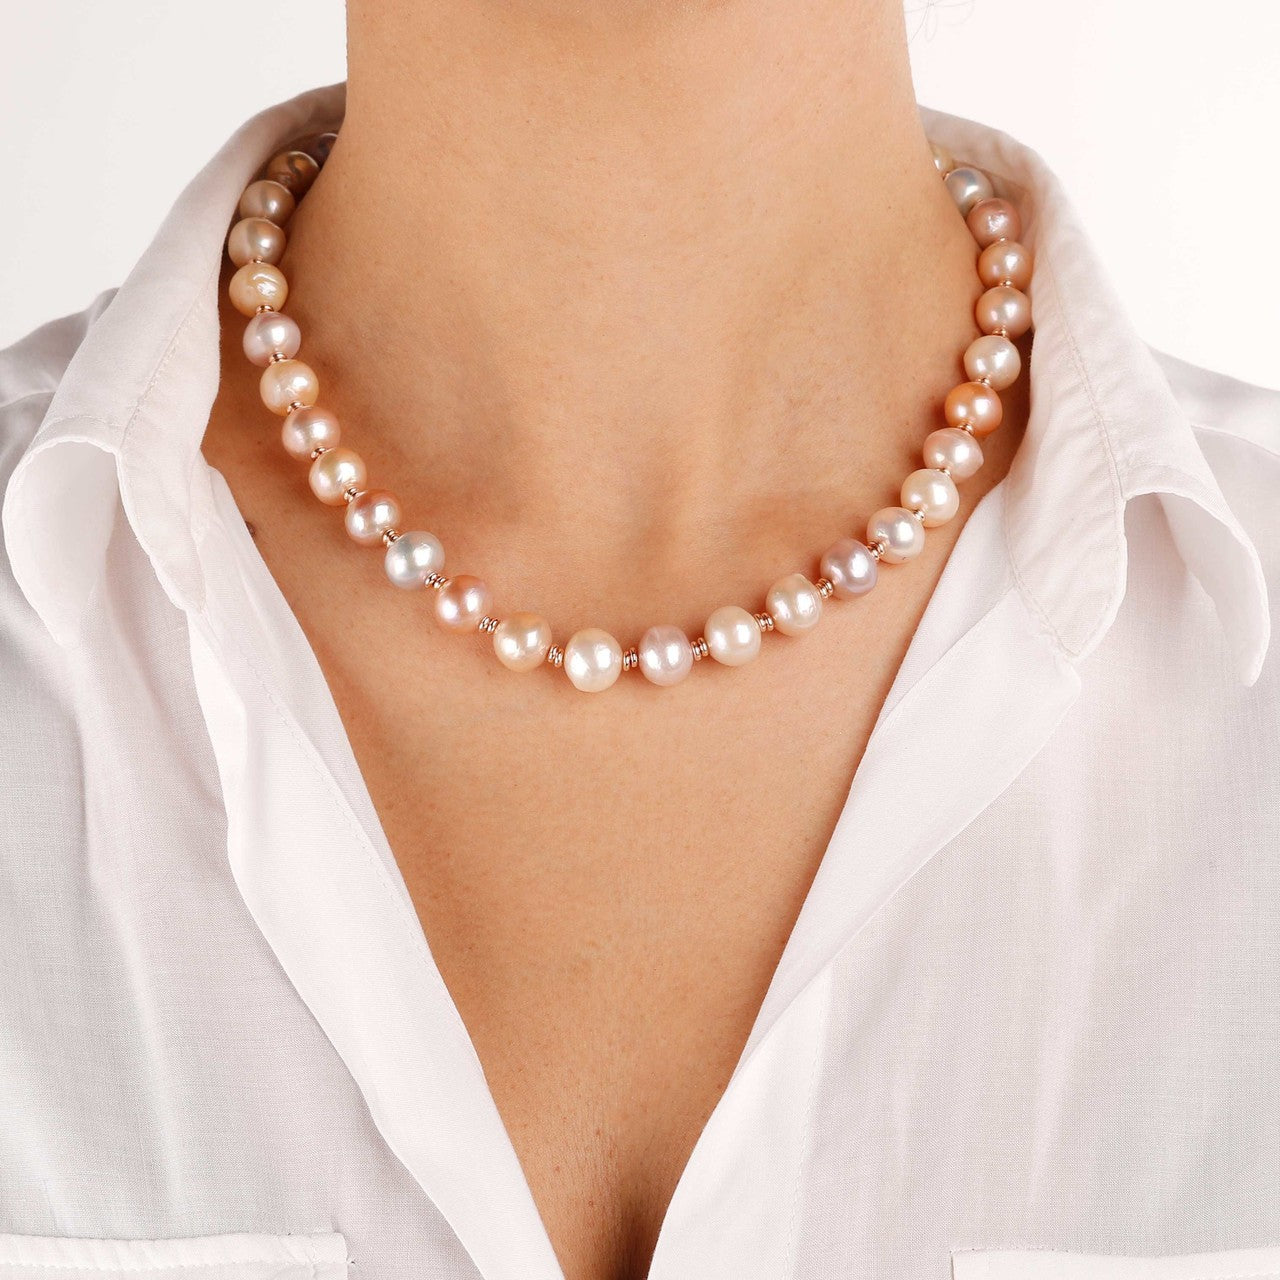 worn One Strand Pearl Necklace